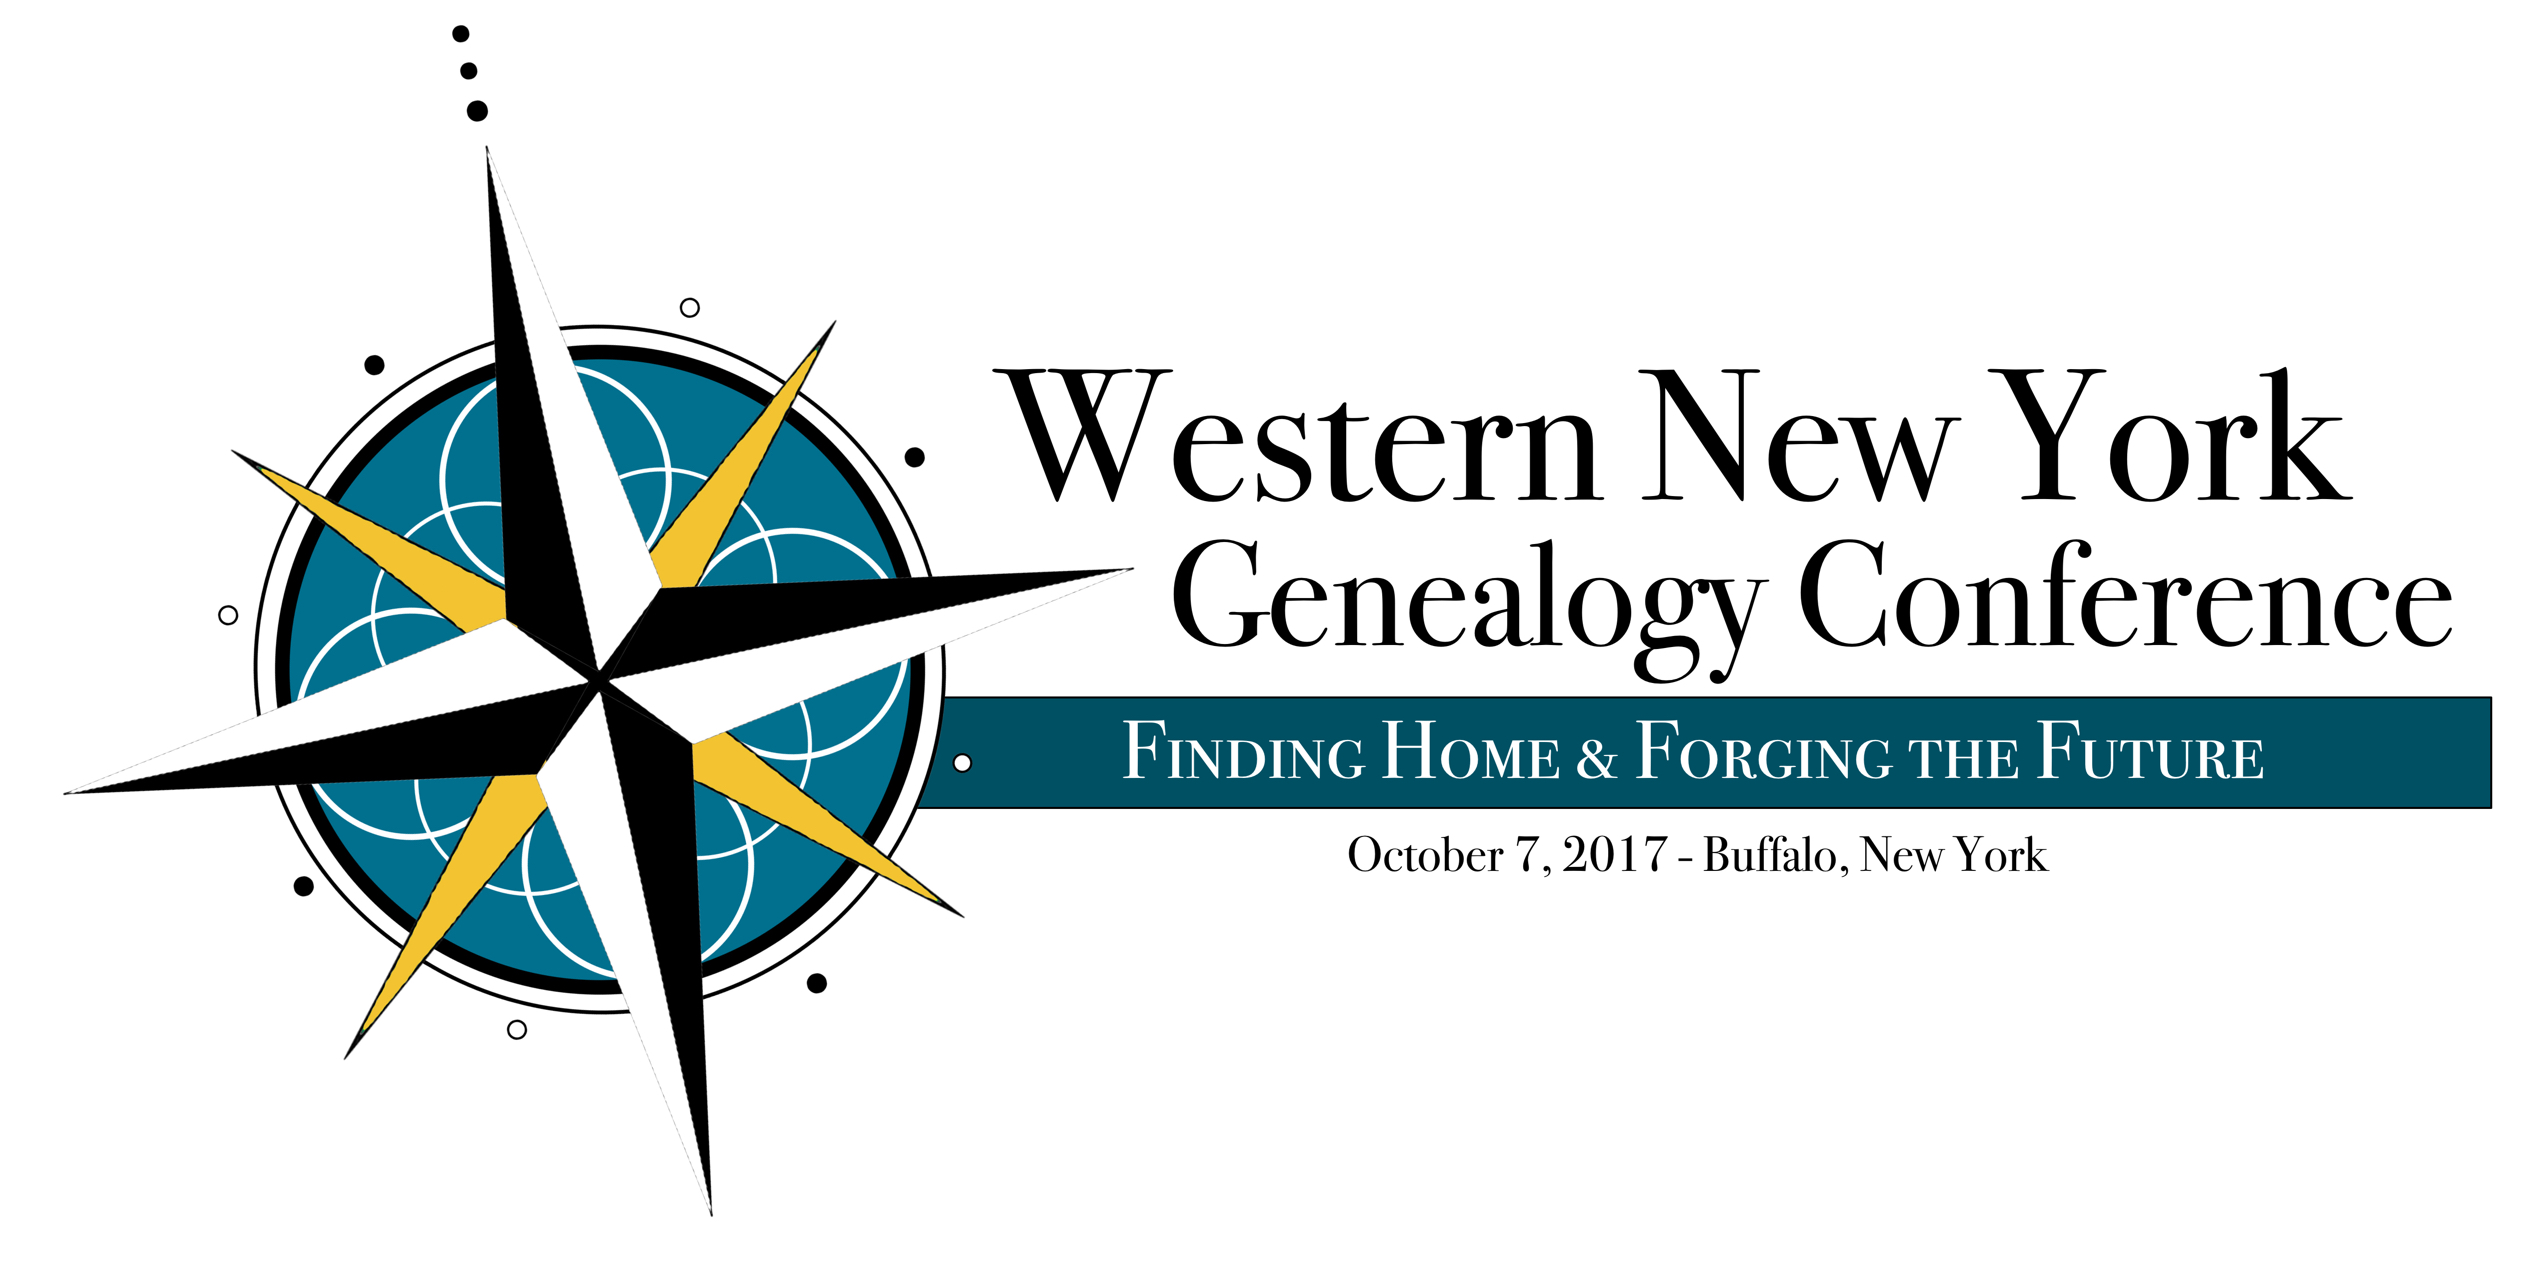 Western New York Genealogy Conference Logo- Buffalo, New York - October 7, 2017